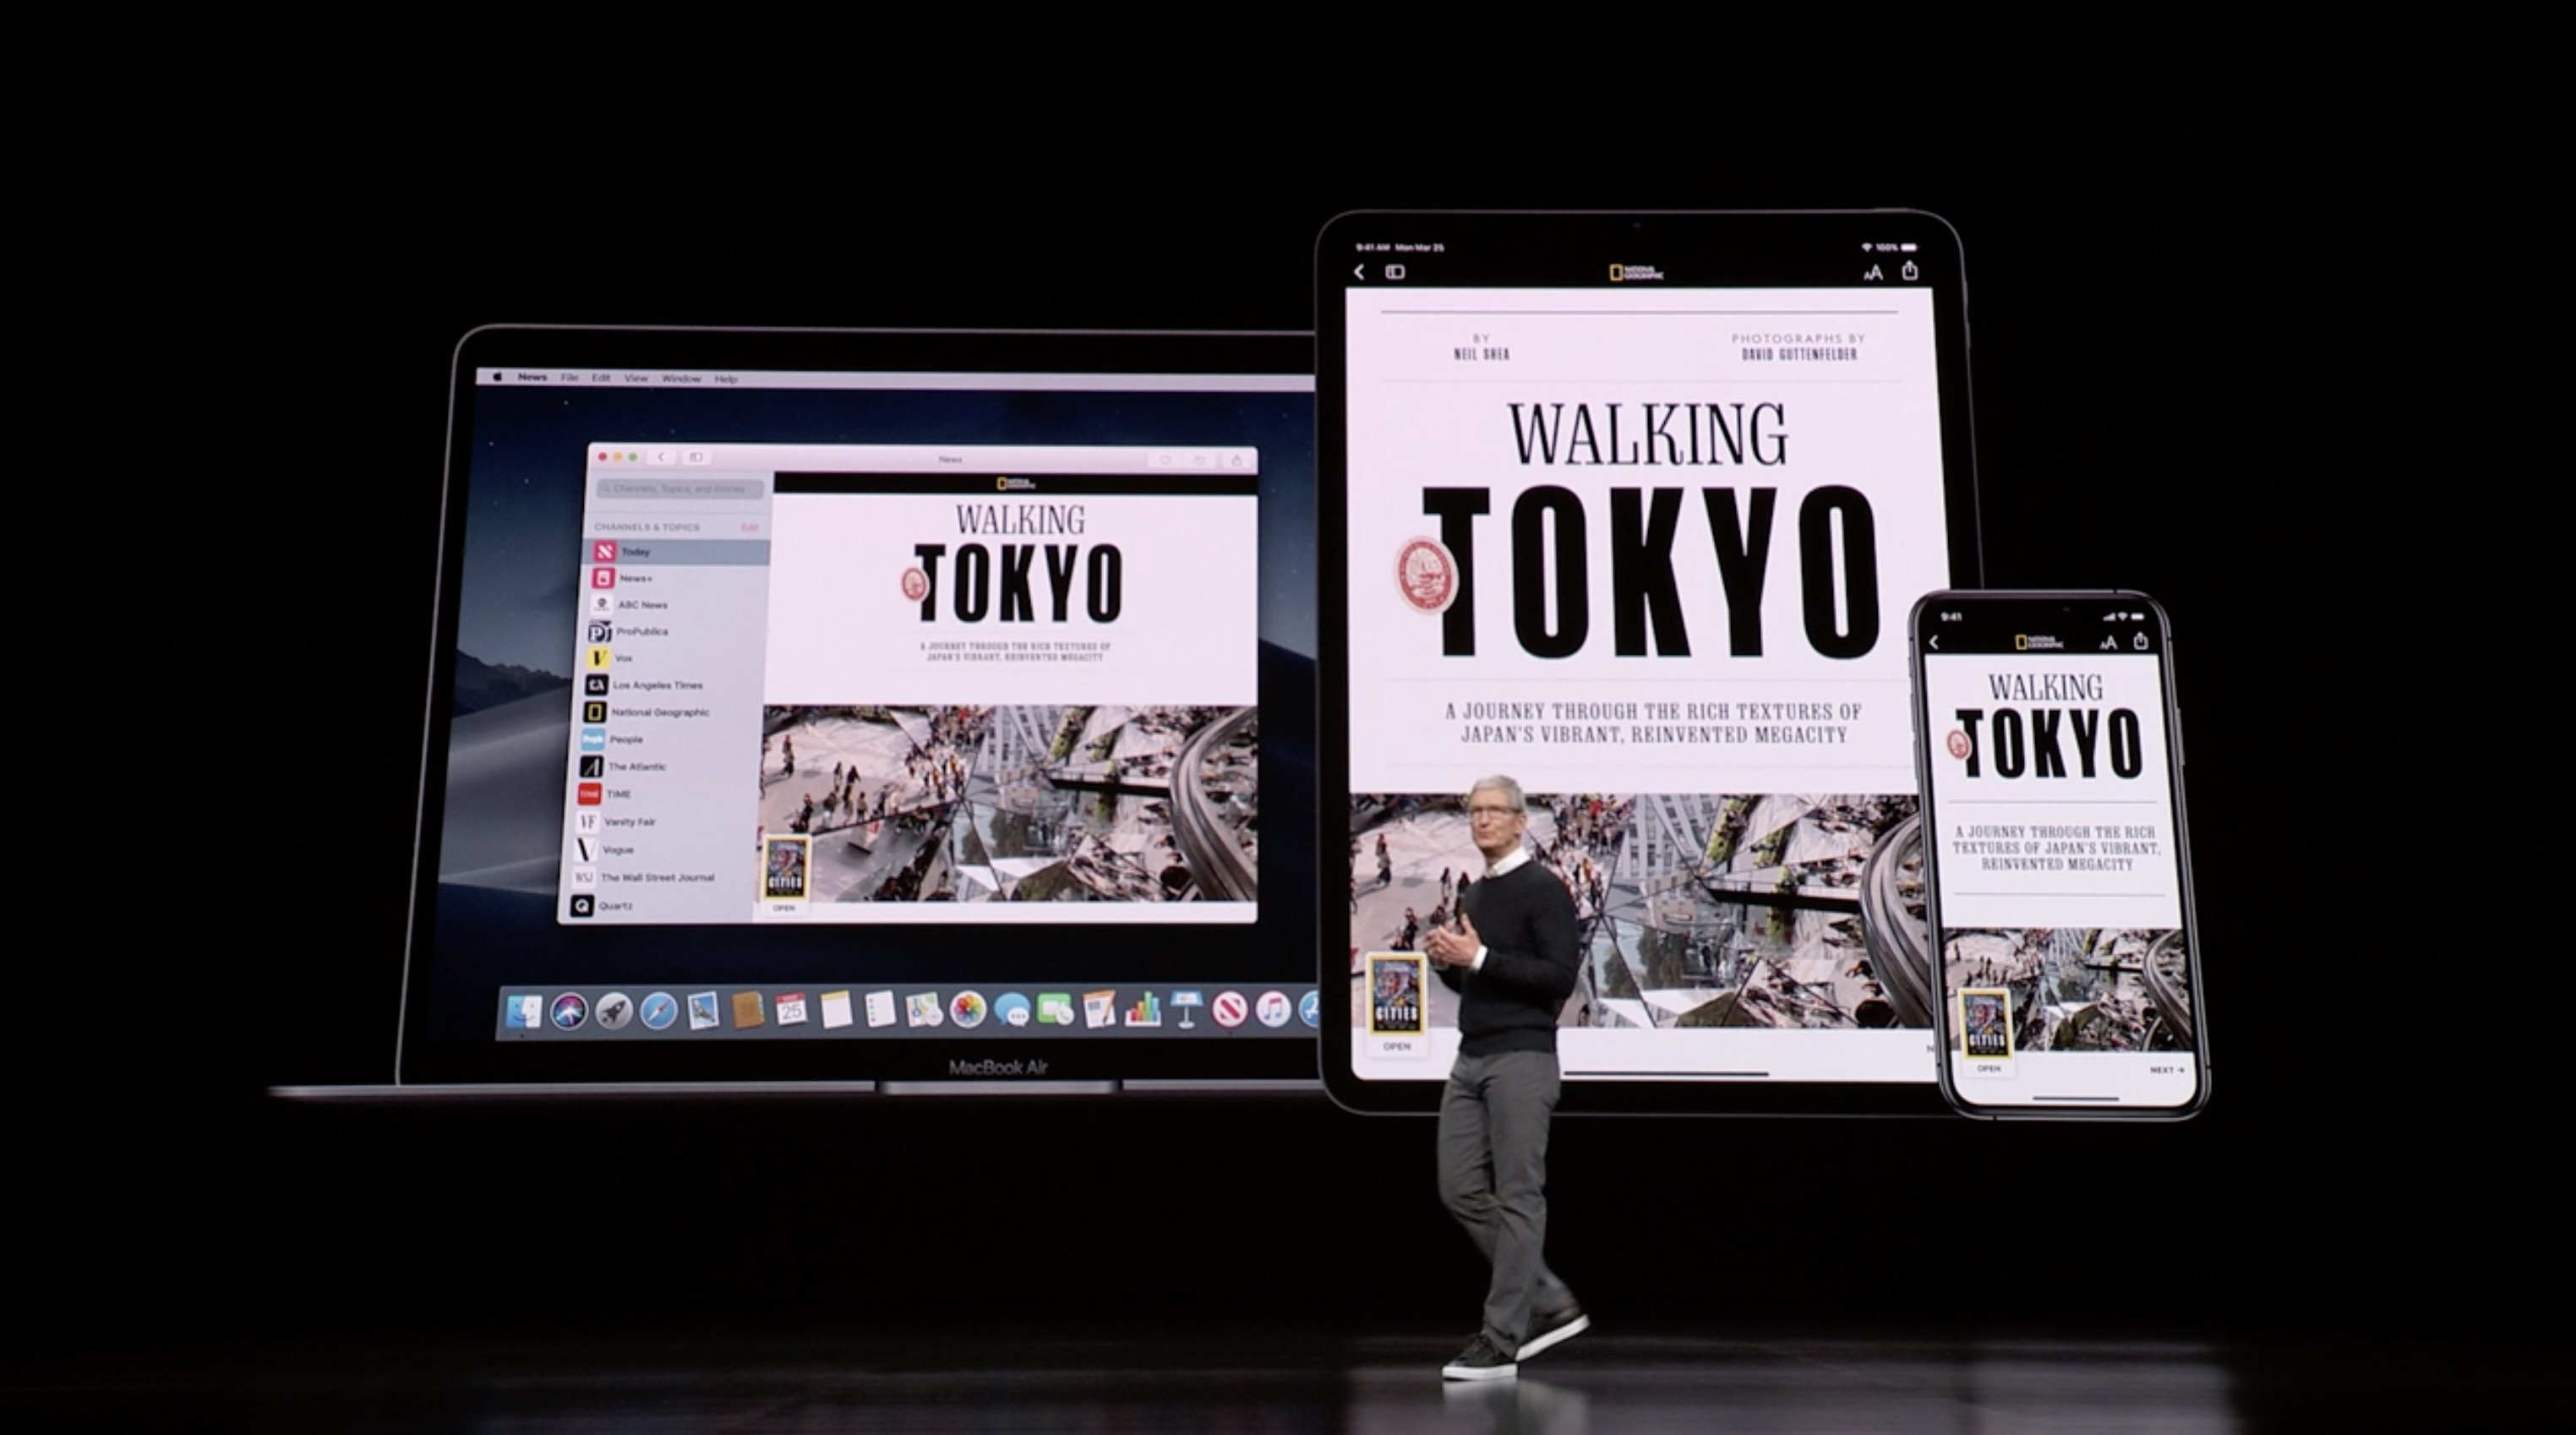 """Movable magazine covers make an impression like the """"Daily Prophet"""" in Harry Potter. Here s Apple News +"""